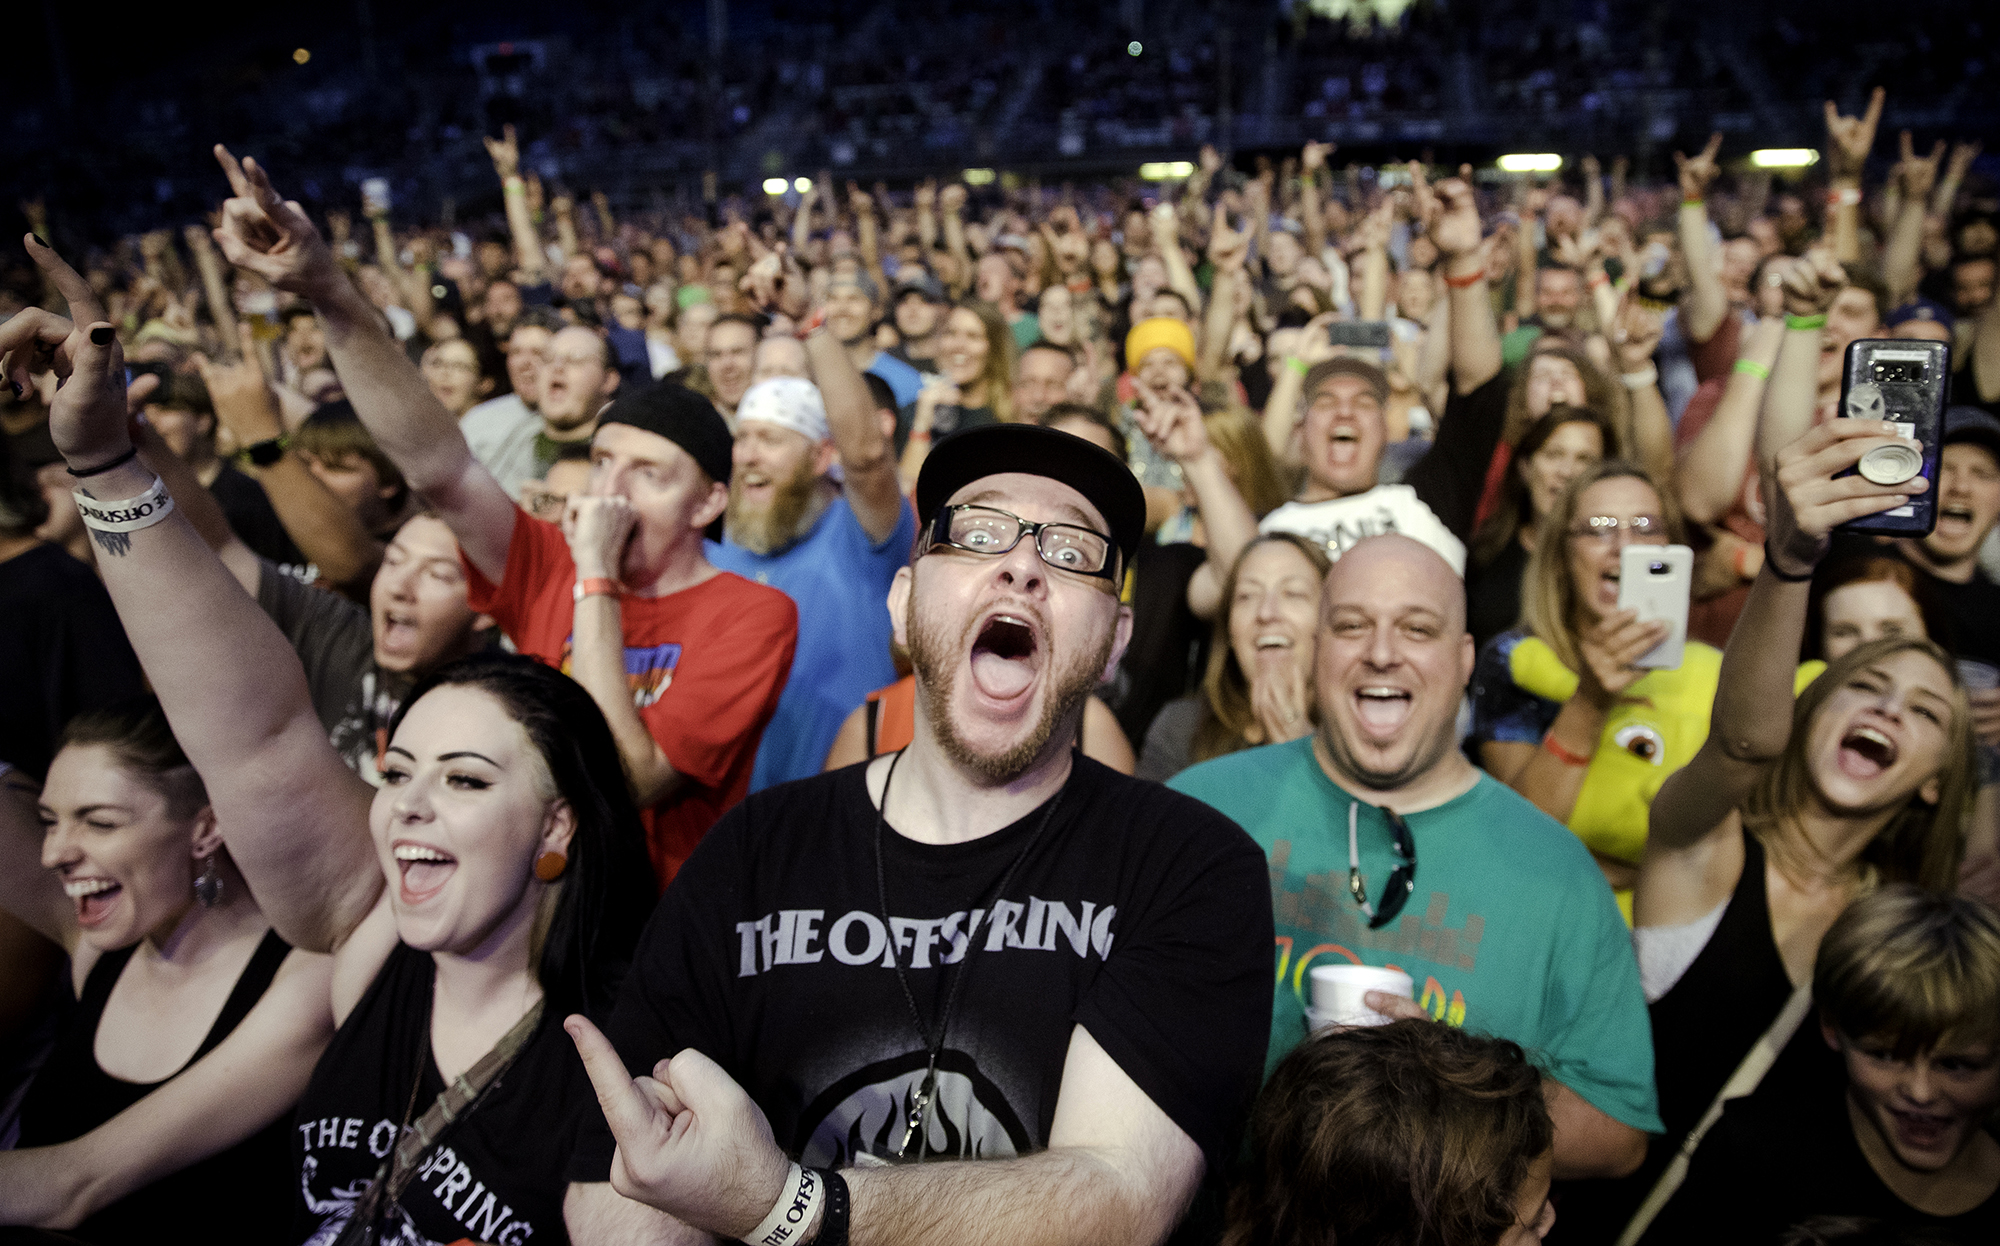 Fans scream for The Offspring during their performance at the Illinois State Fair Wednesday, Aug. 15, 2018. [Ted Schurter/The State Journal-Register]